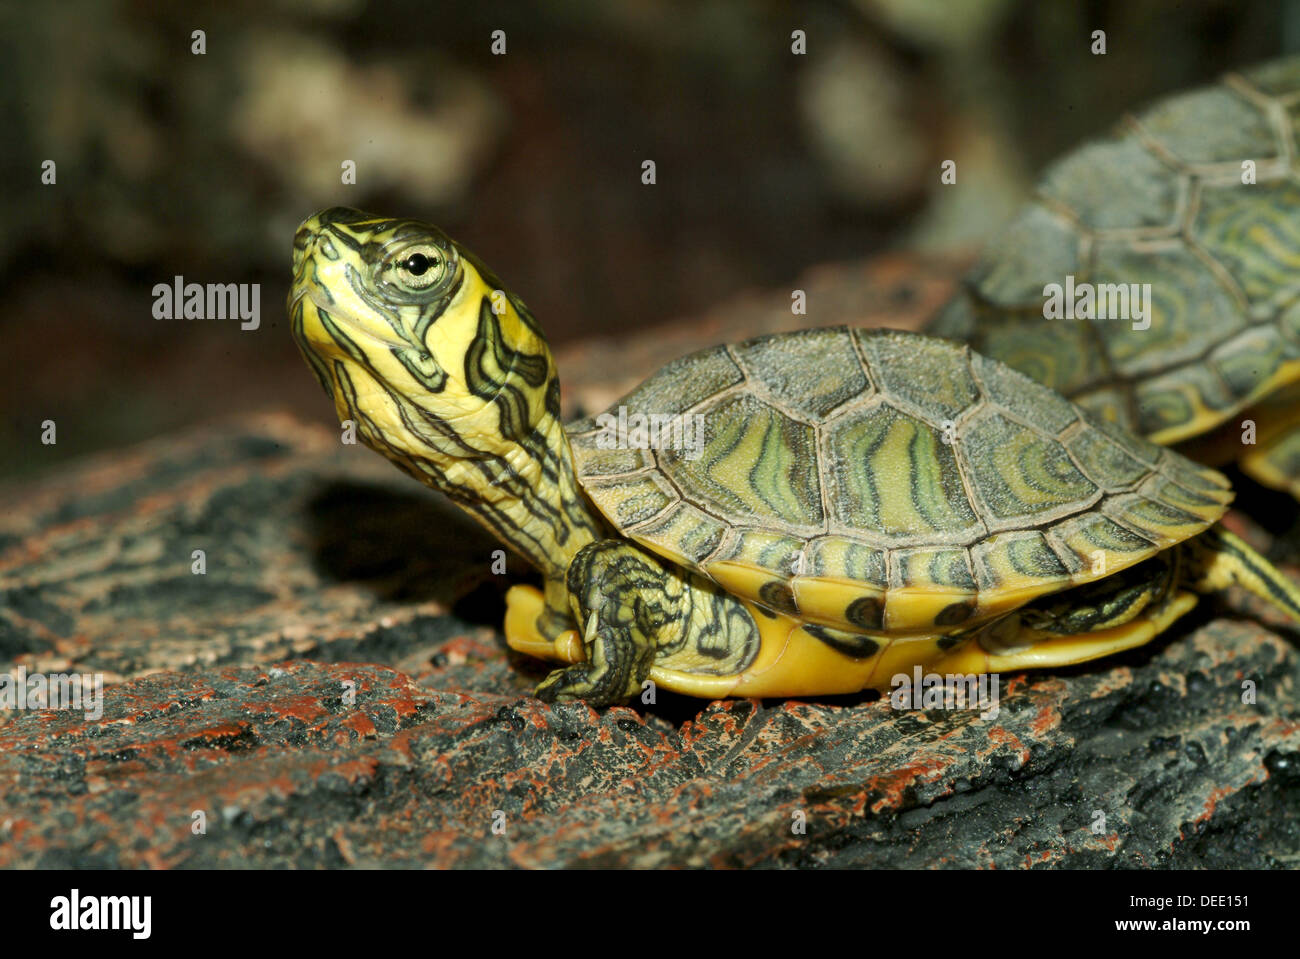 Yellow bellied slider trachemys scripta scripta stock for Trachemys scripta